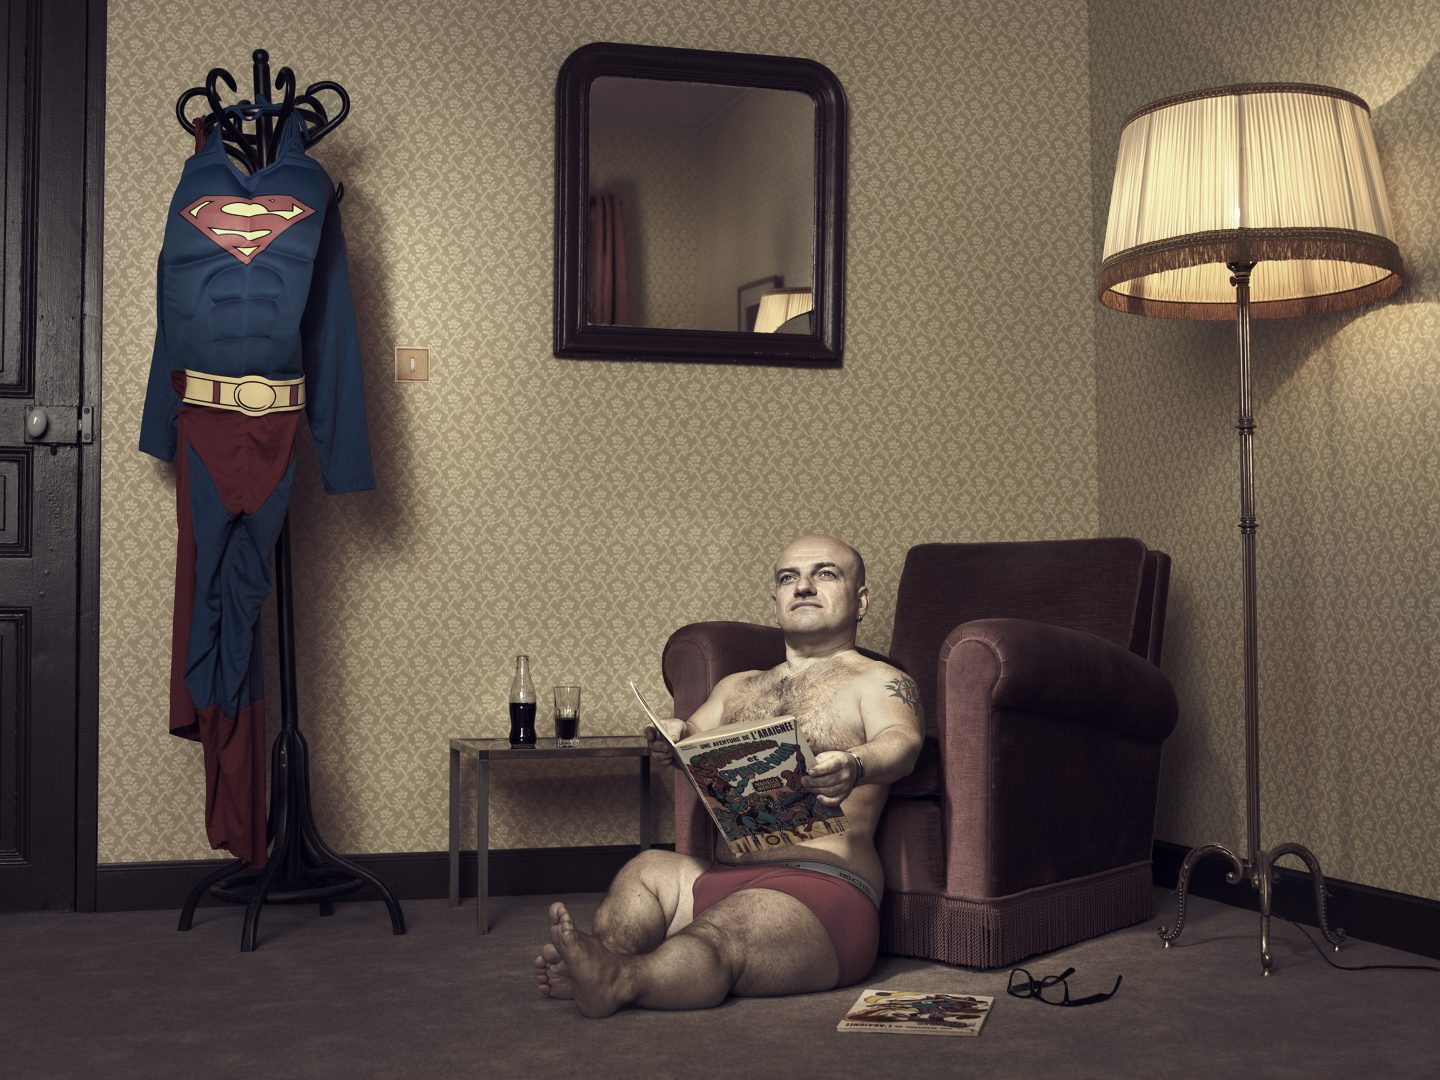 Dwarf sitting on floor with super man comic in room 42 by Stefan Rappo